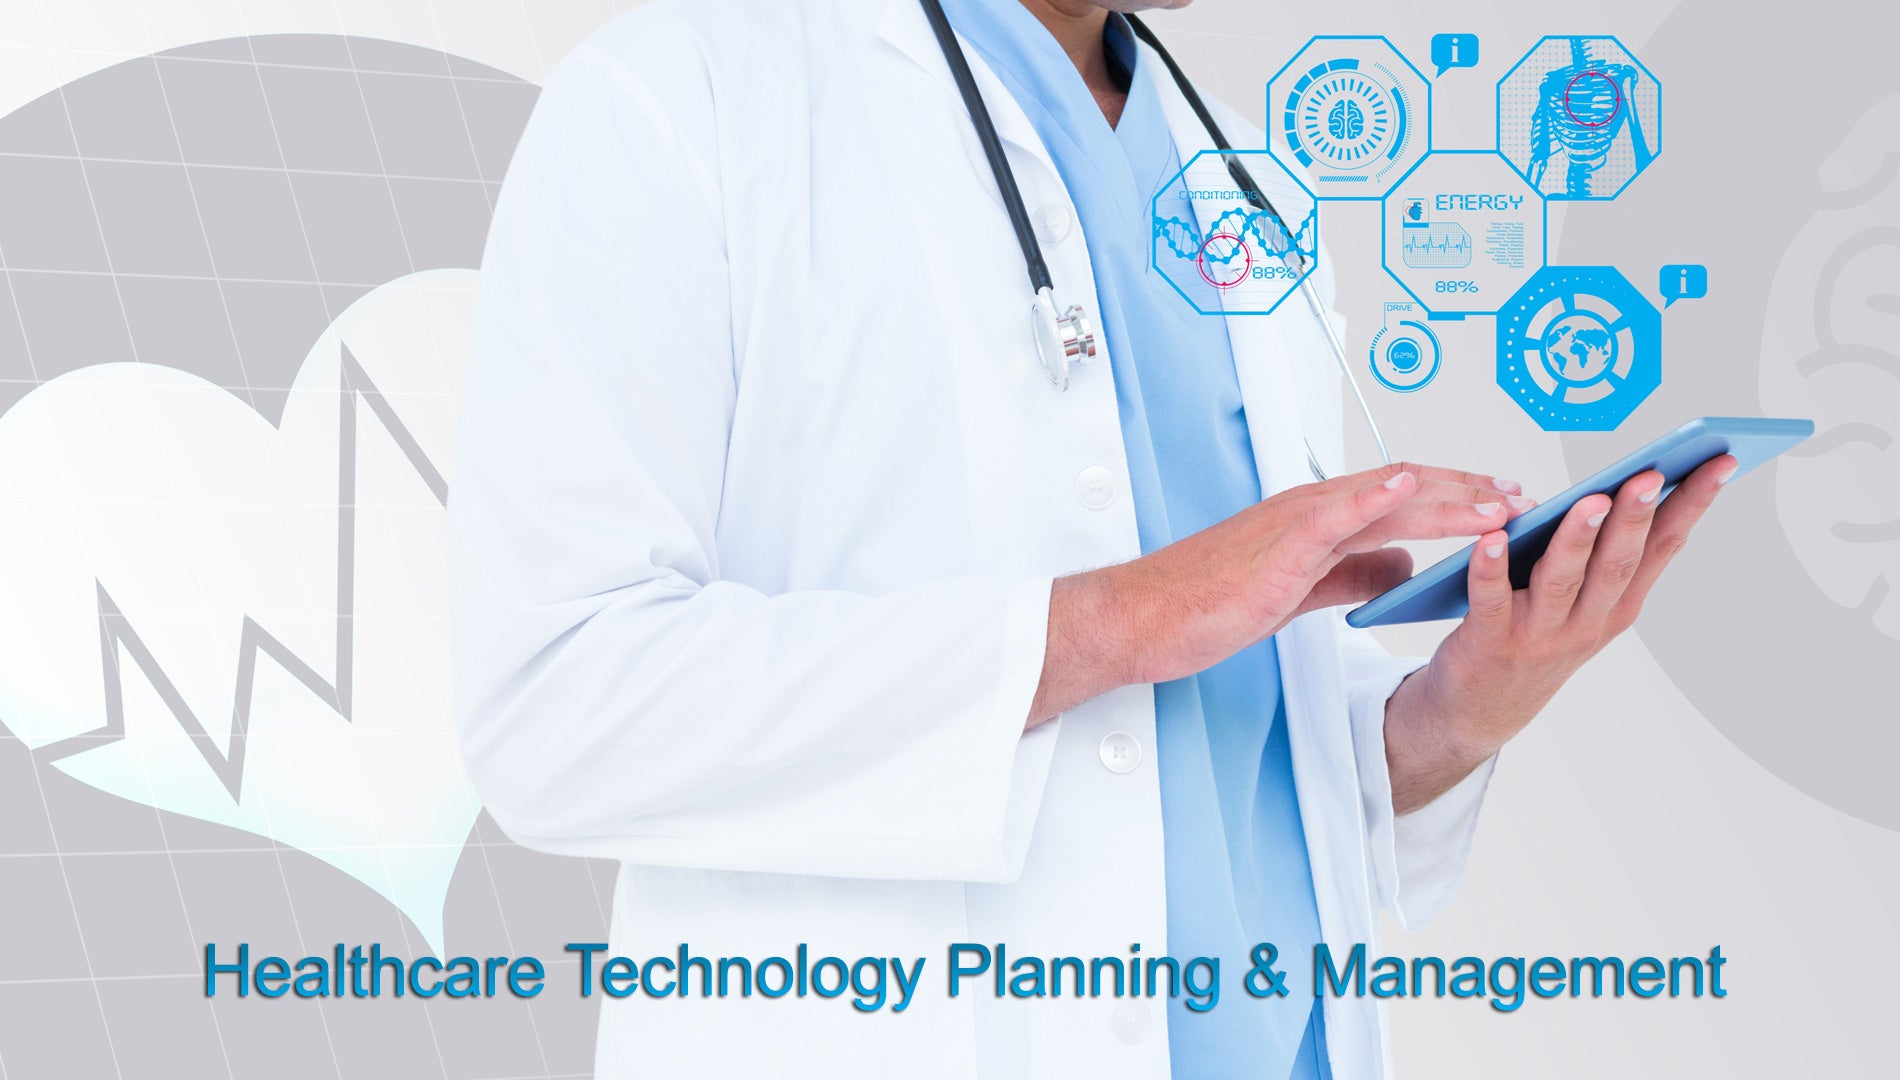 Healthcare Technology Planning & Management